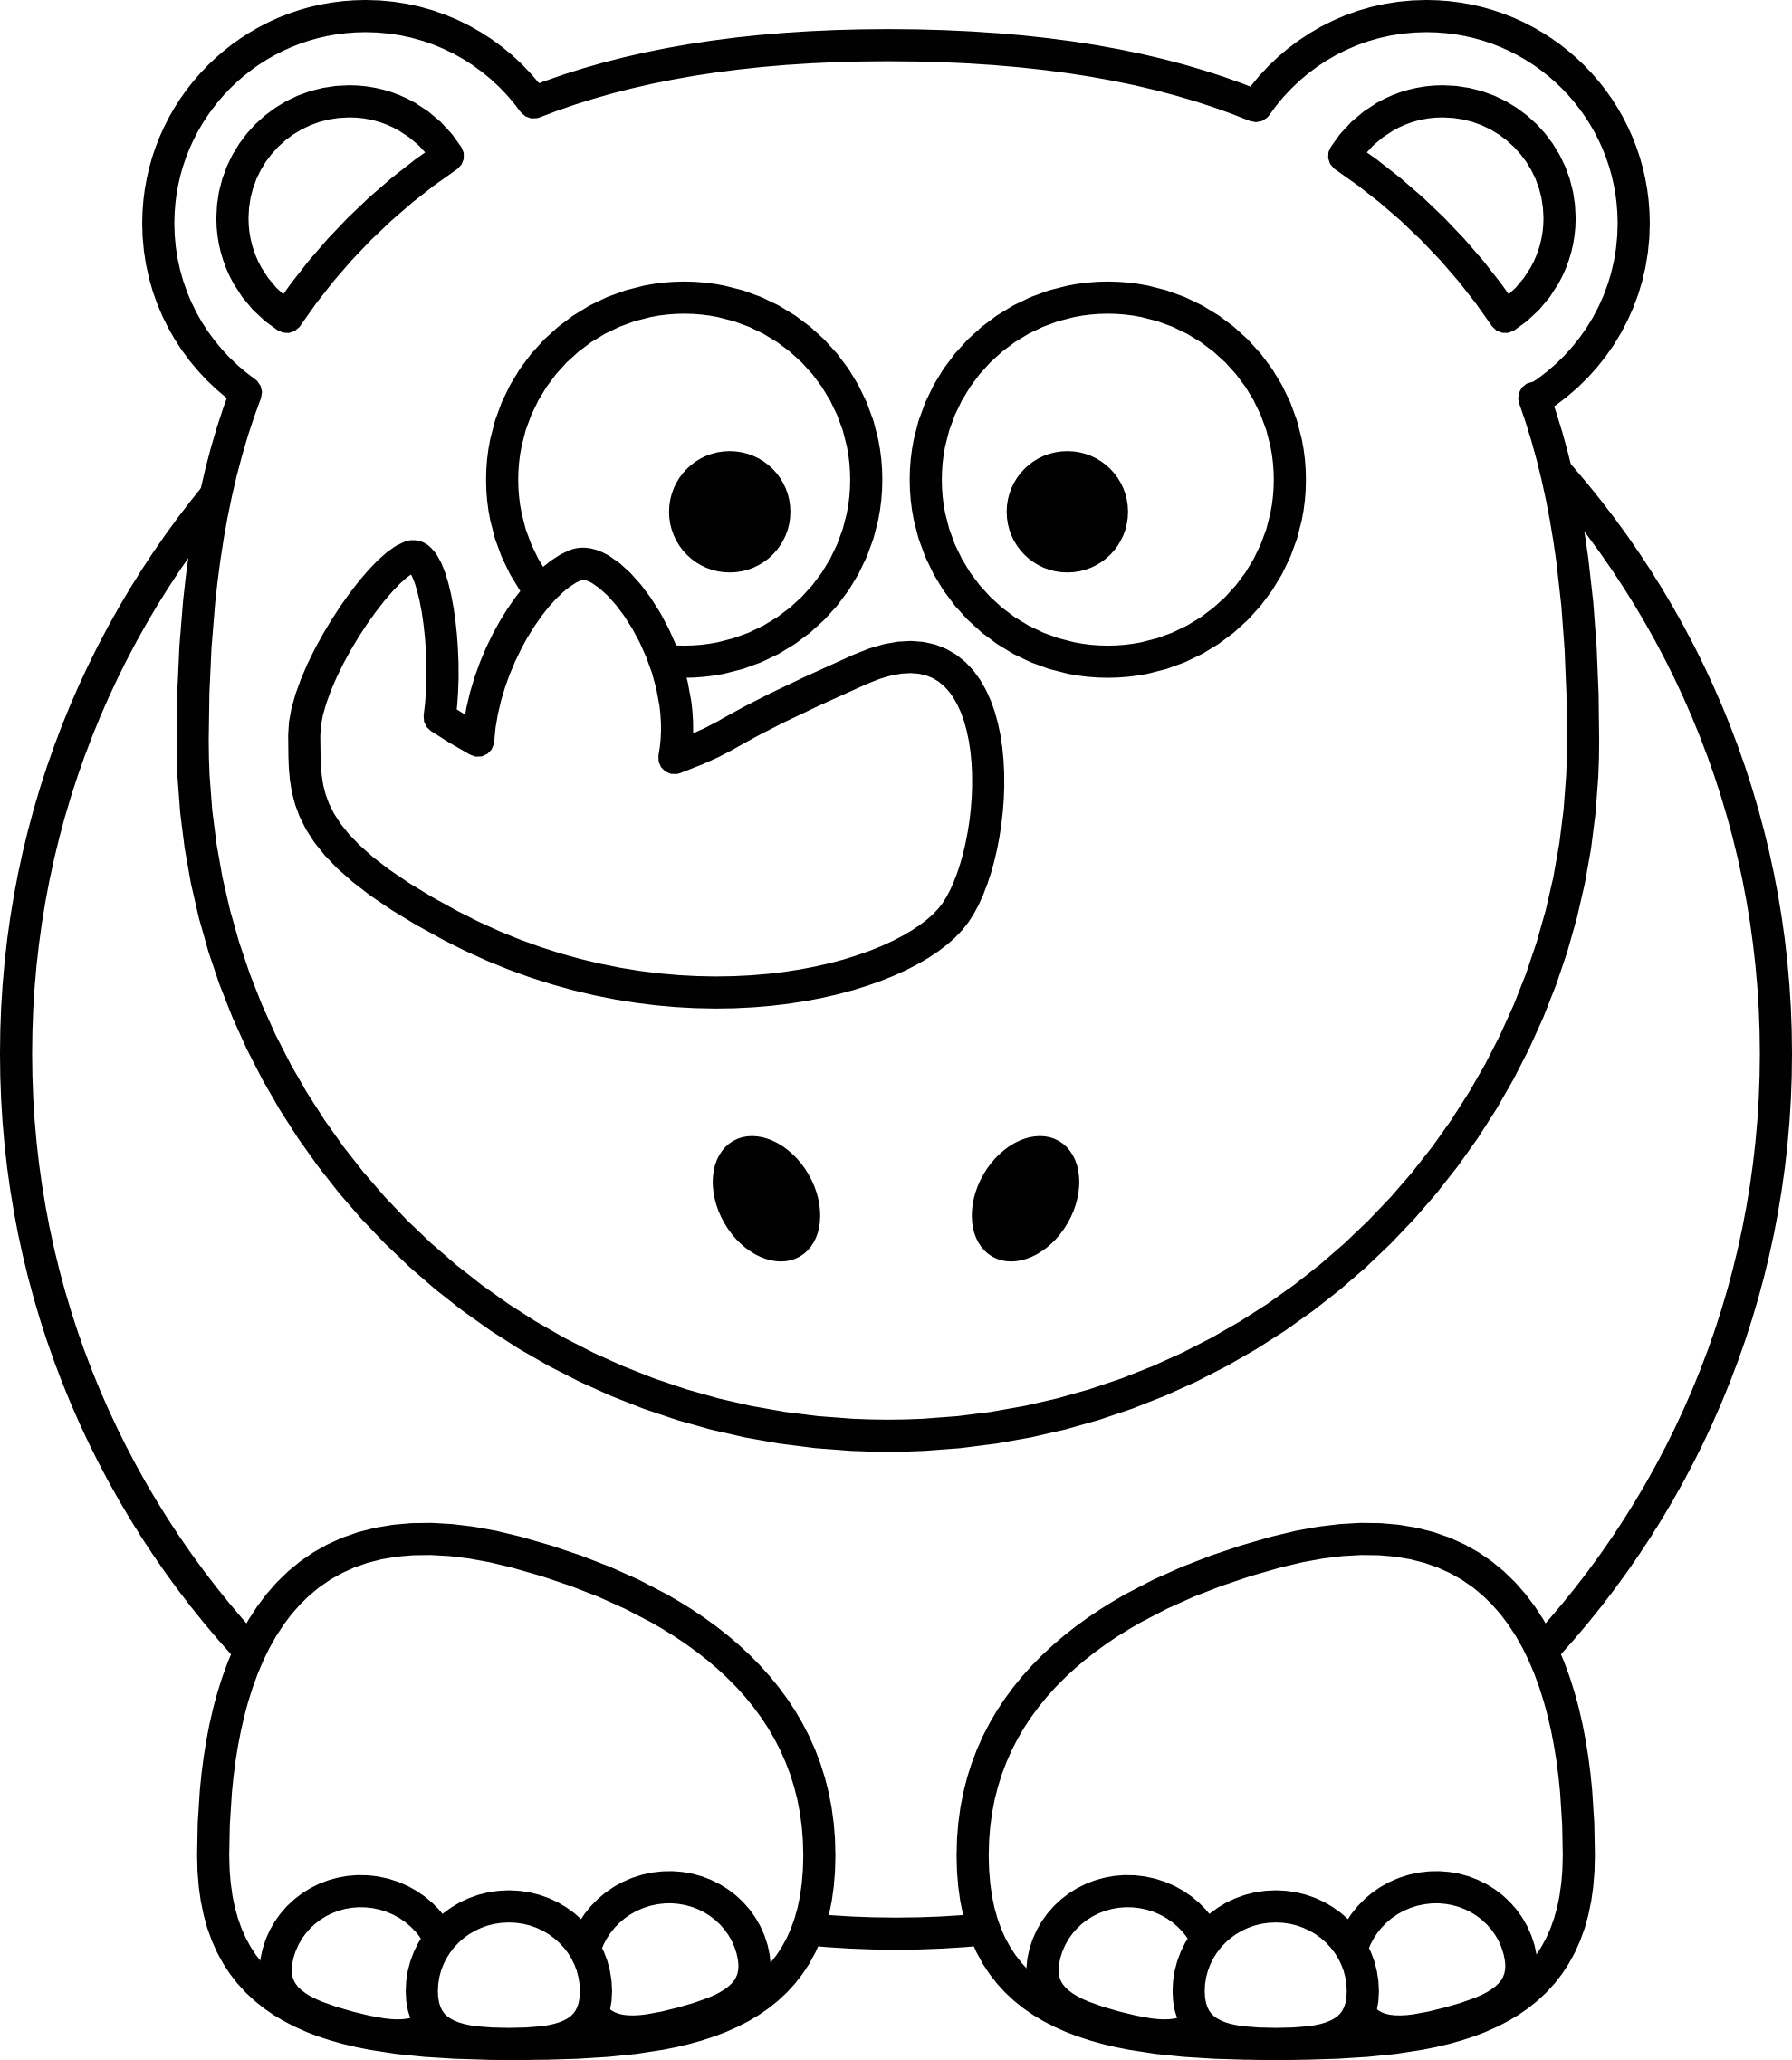 Clipart Line Drawings